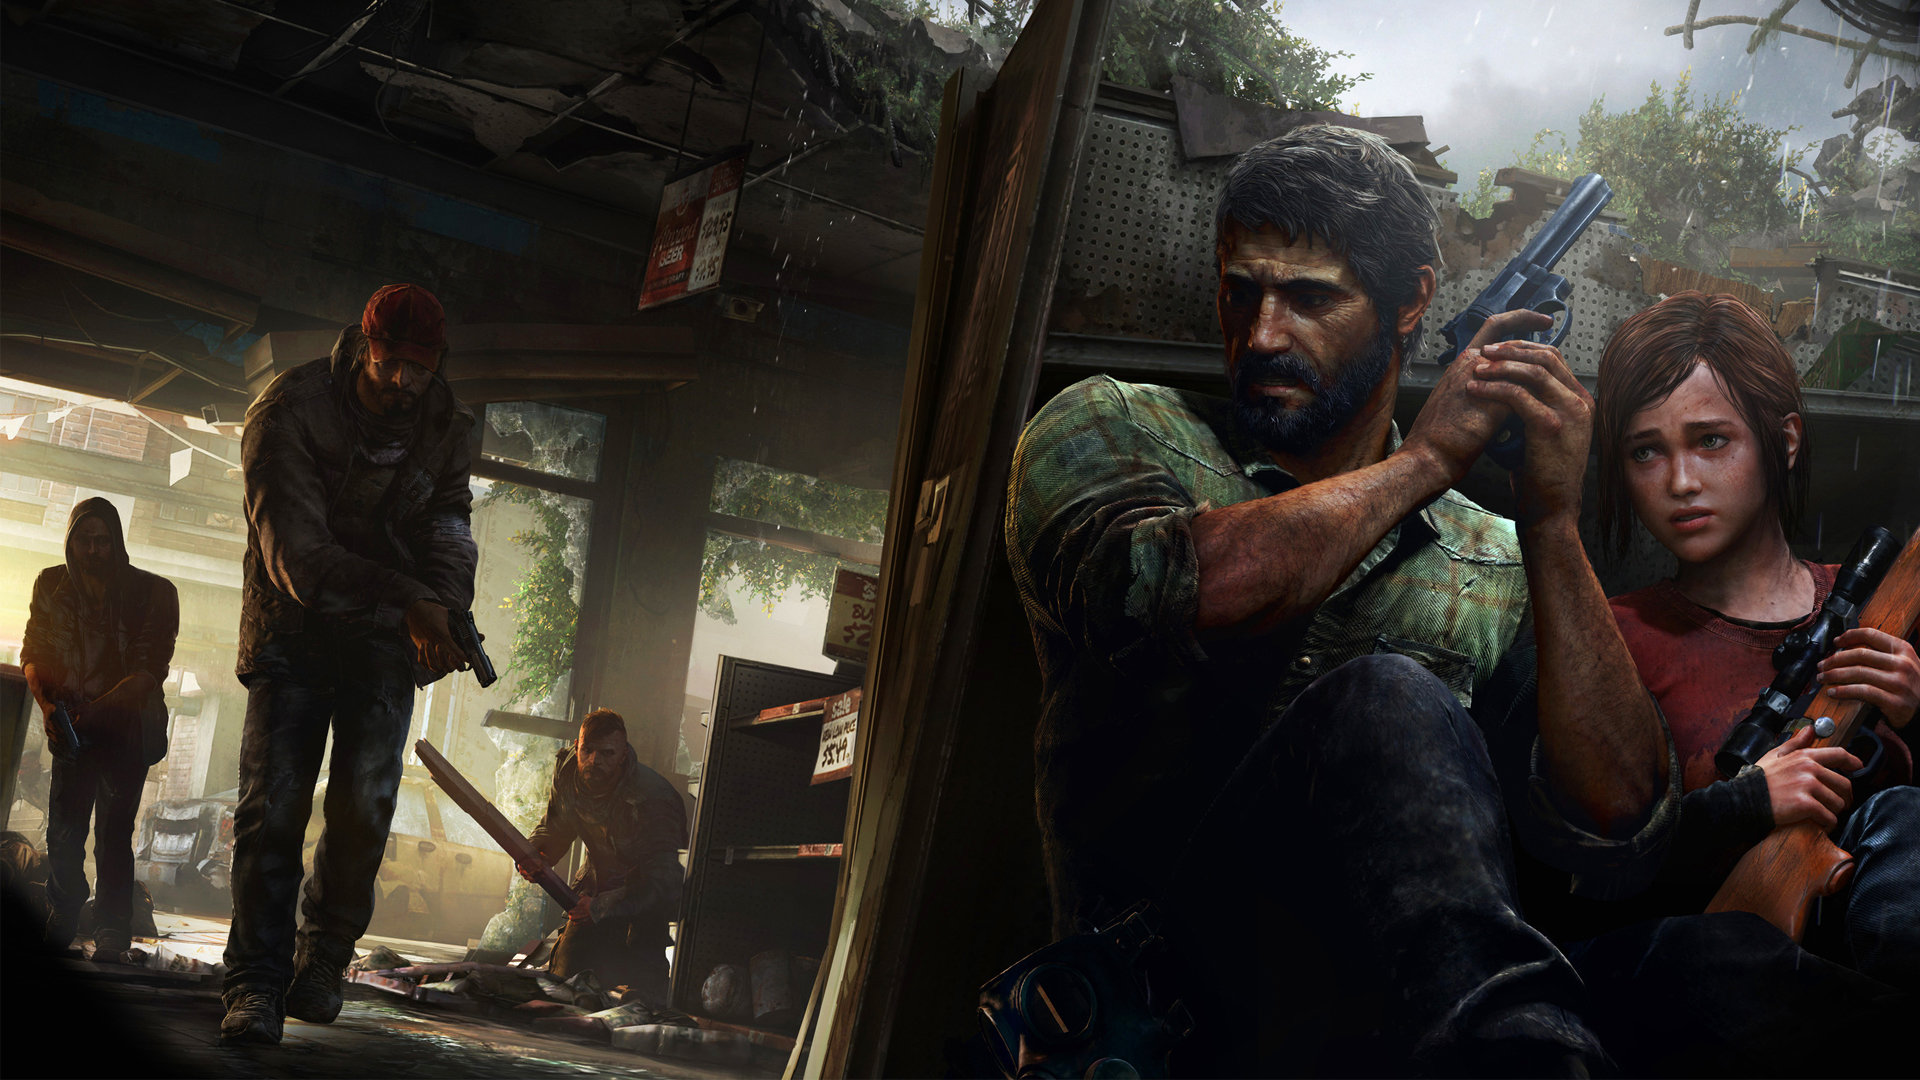 Download 1080p The Last Of Us PC wallpaper ID:248109 for free